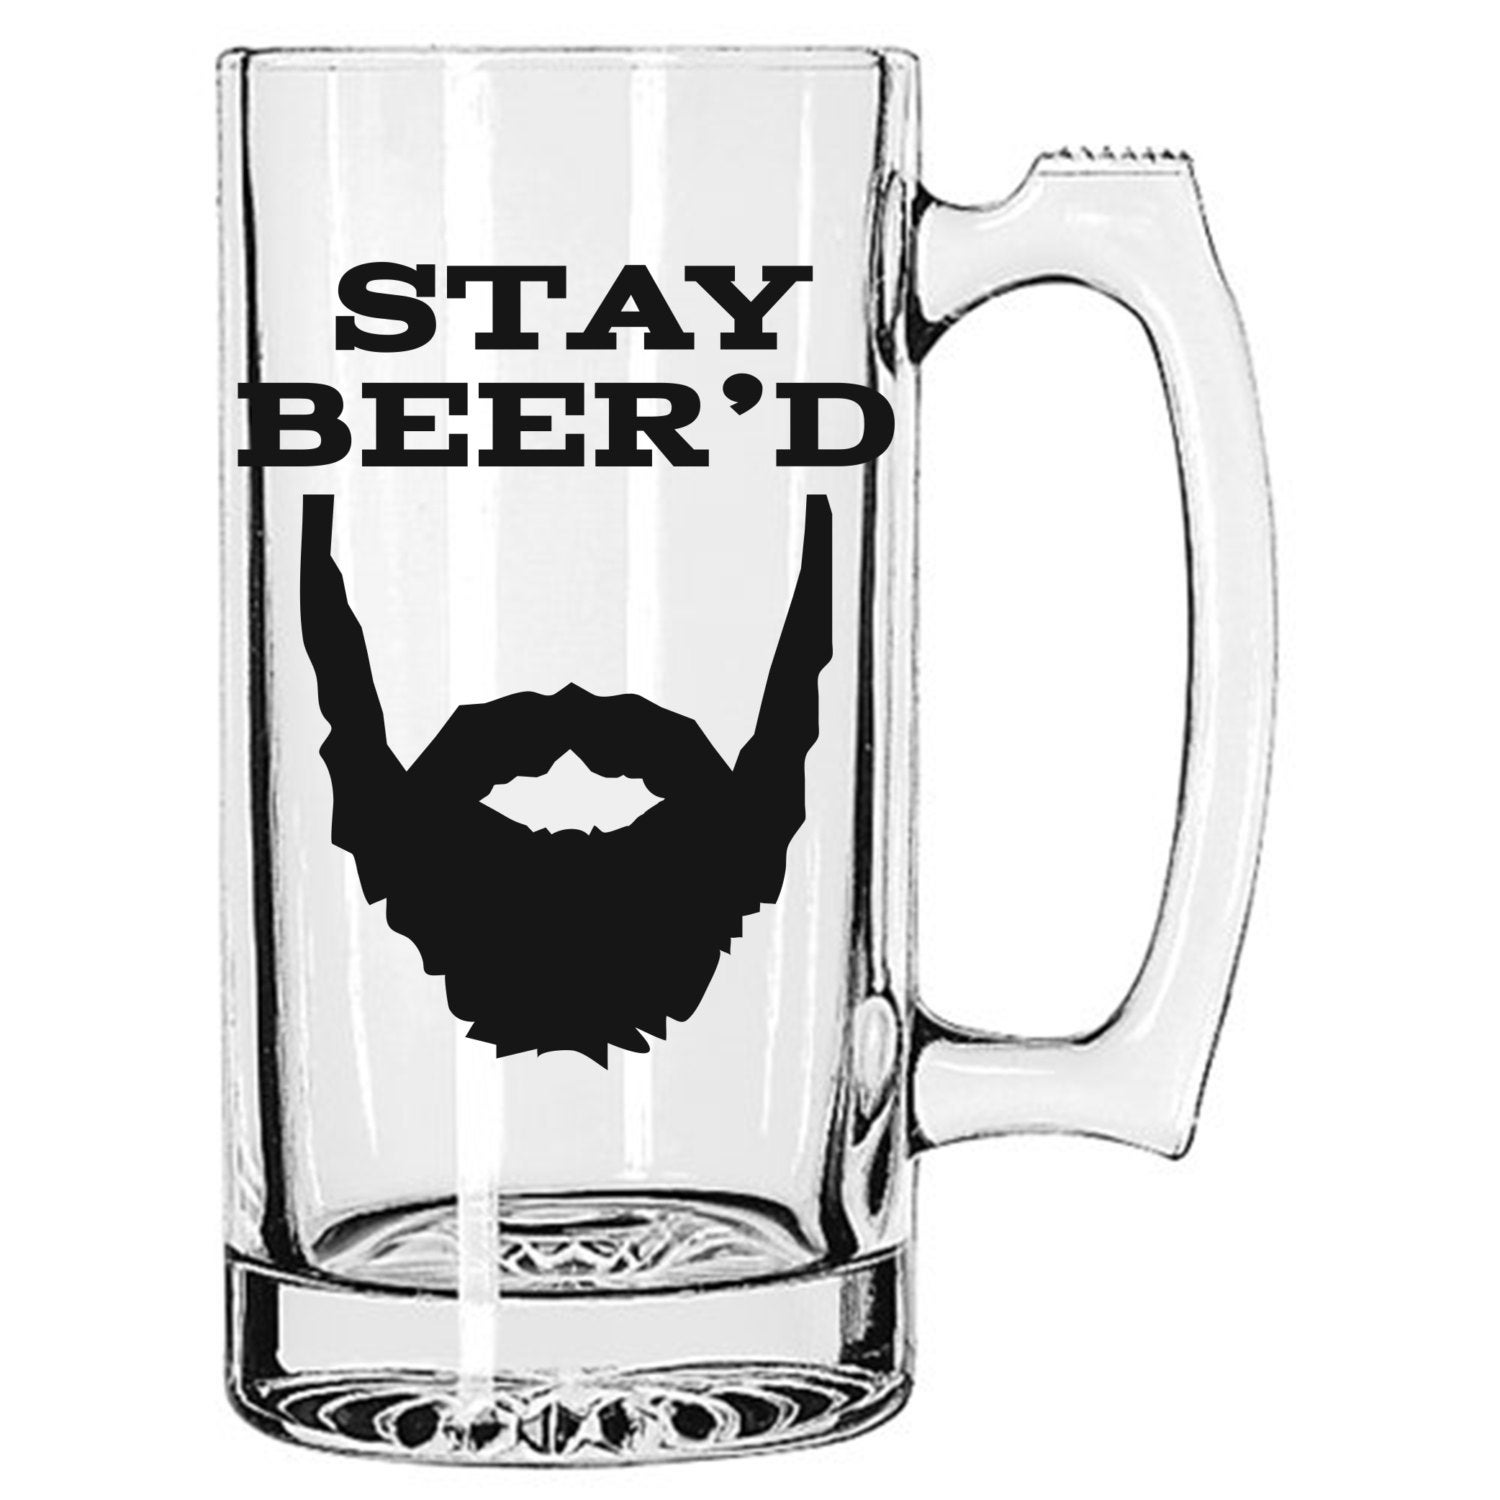 Stay Beer\'d The Original 25 oz Beer Mug beard beer mug